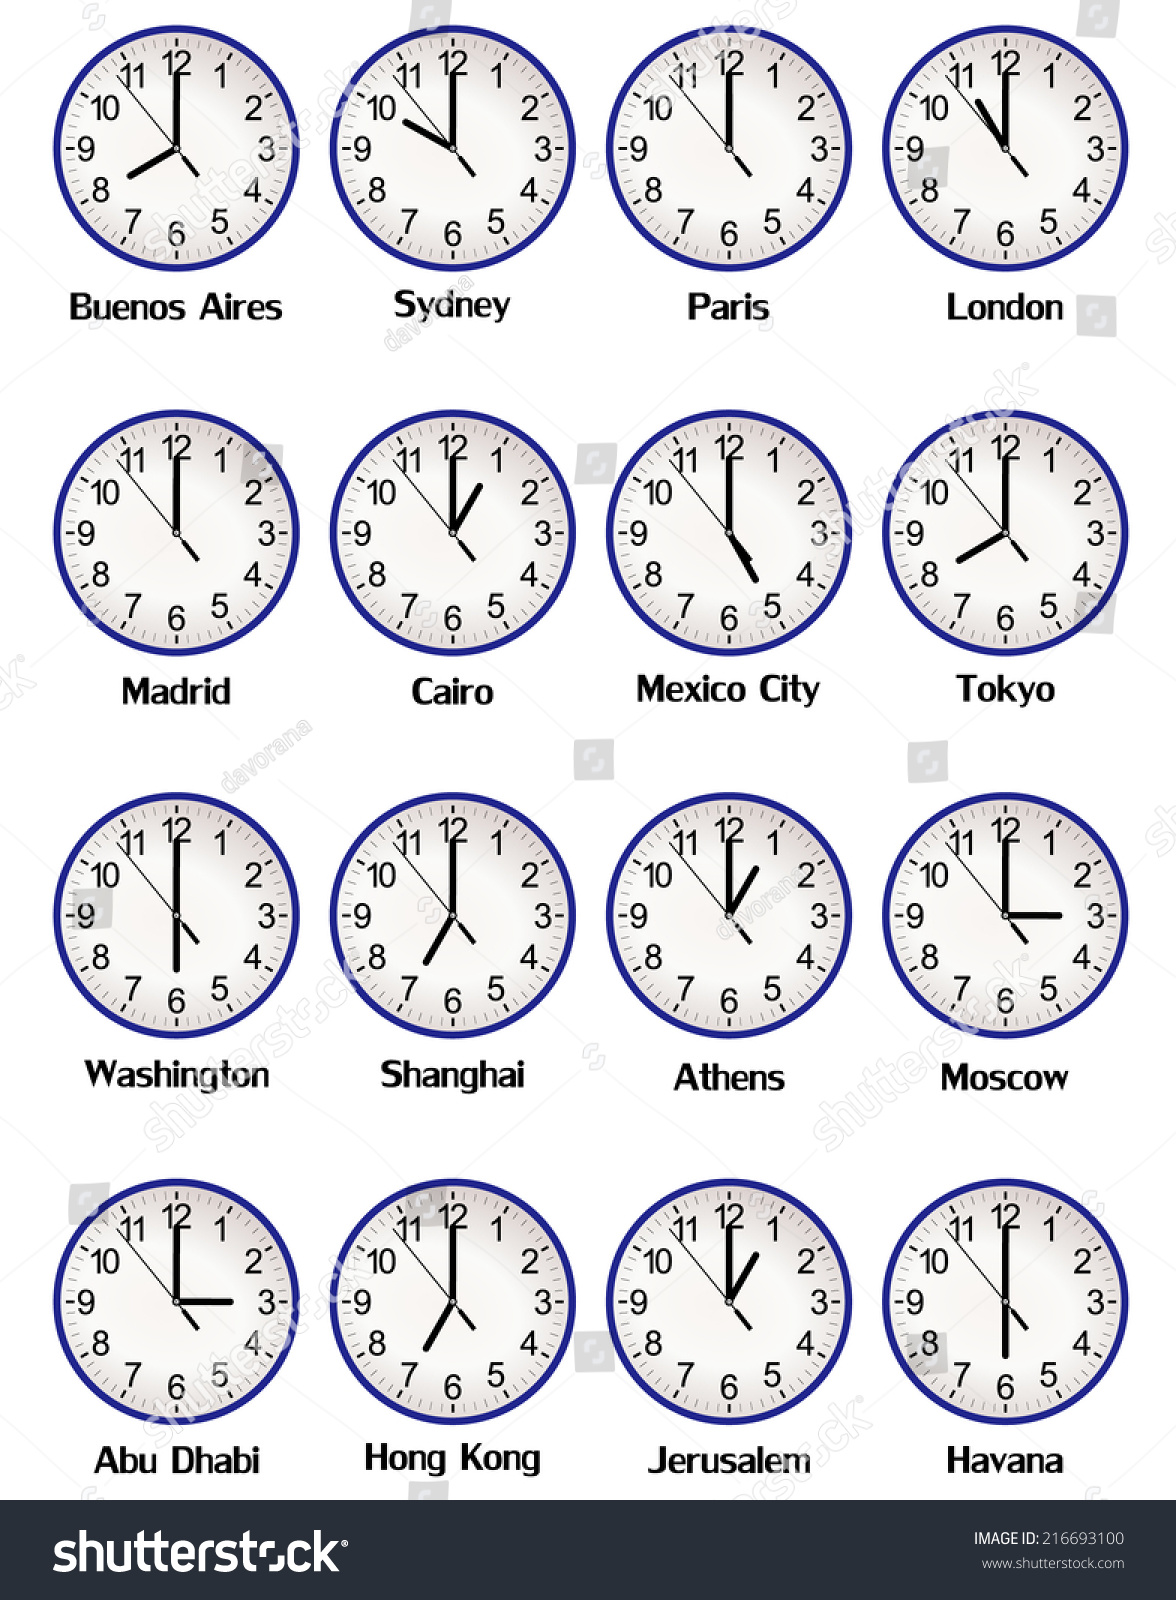 World clock time difference major cities stock vector 216693100 world clock time difference in major cities on blue office clocks vector art image amipublicfo Choice Image